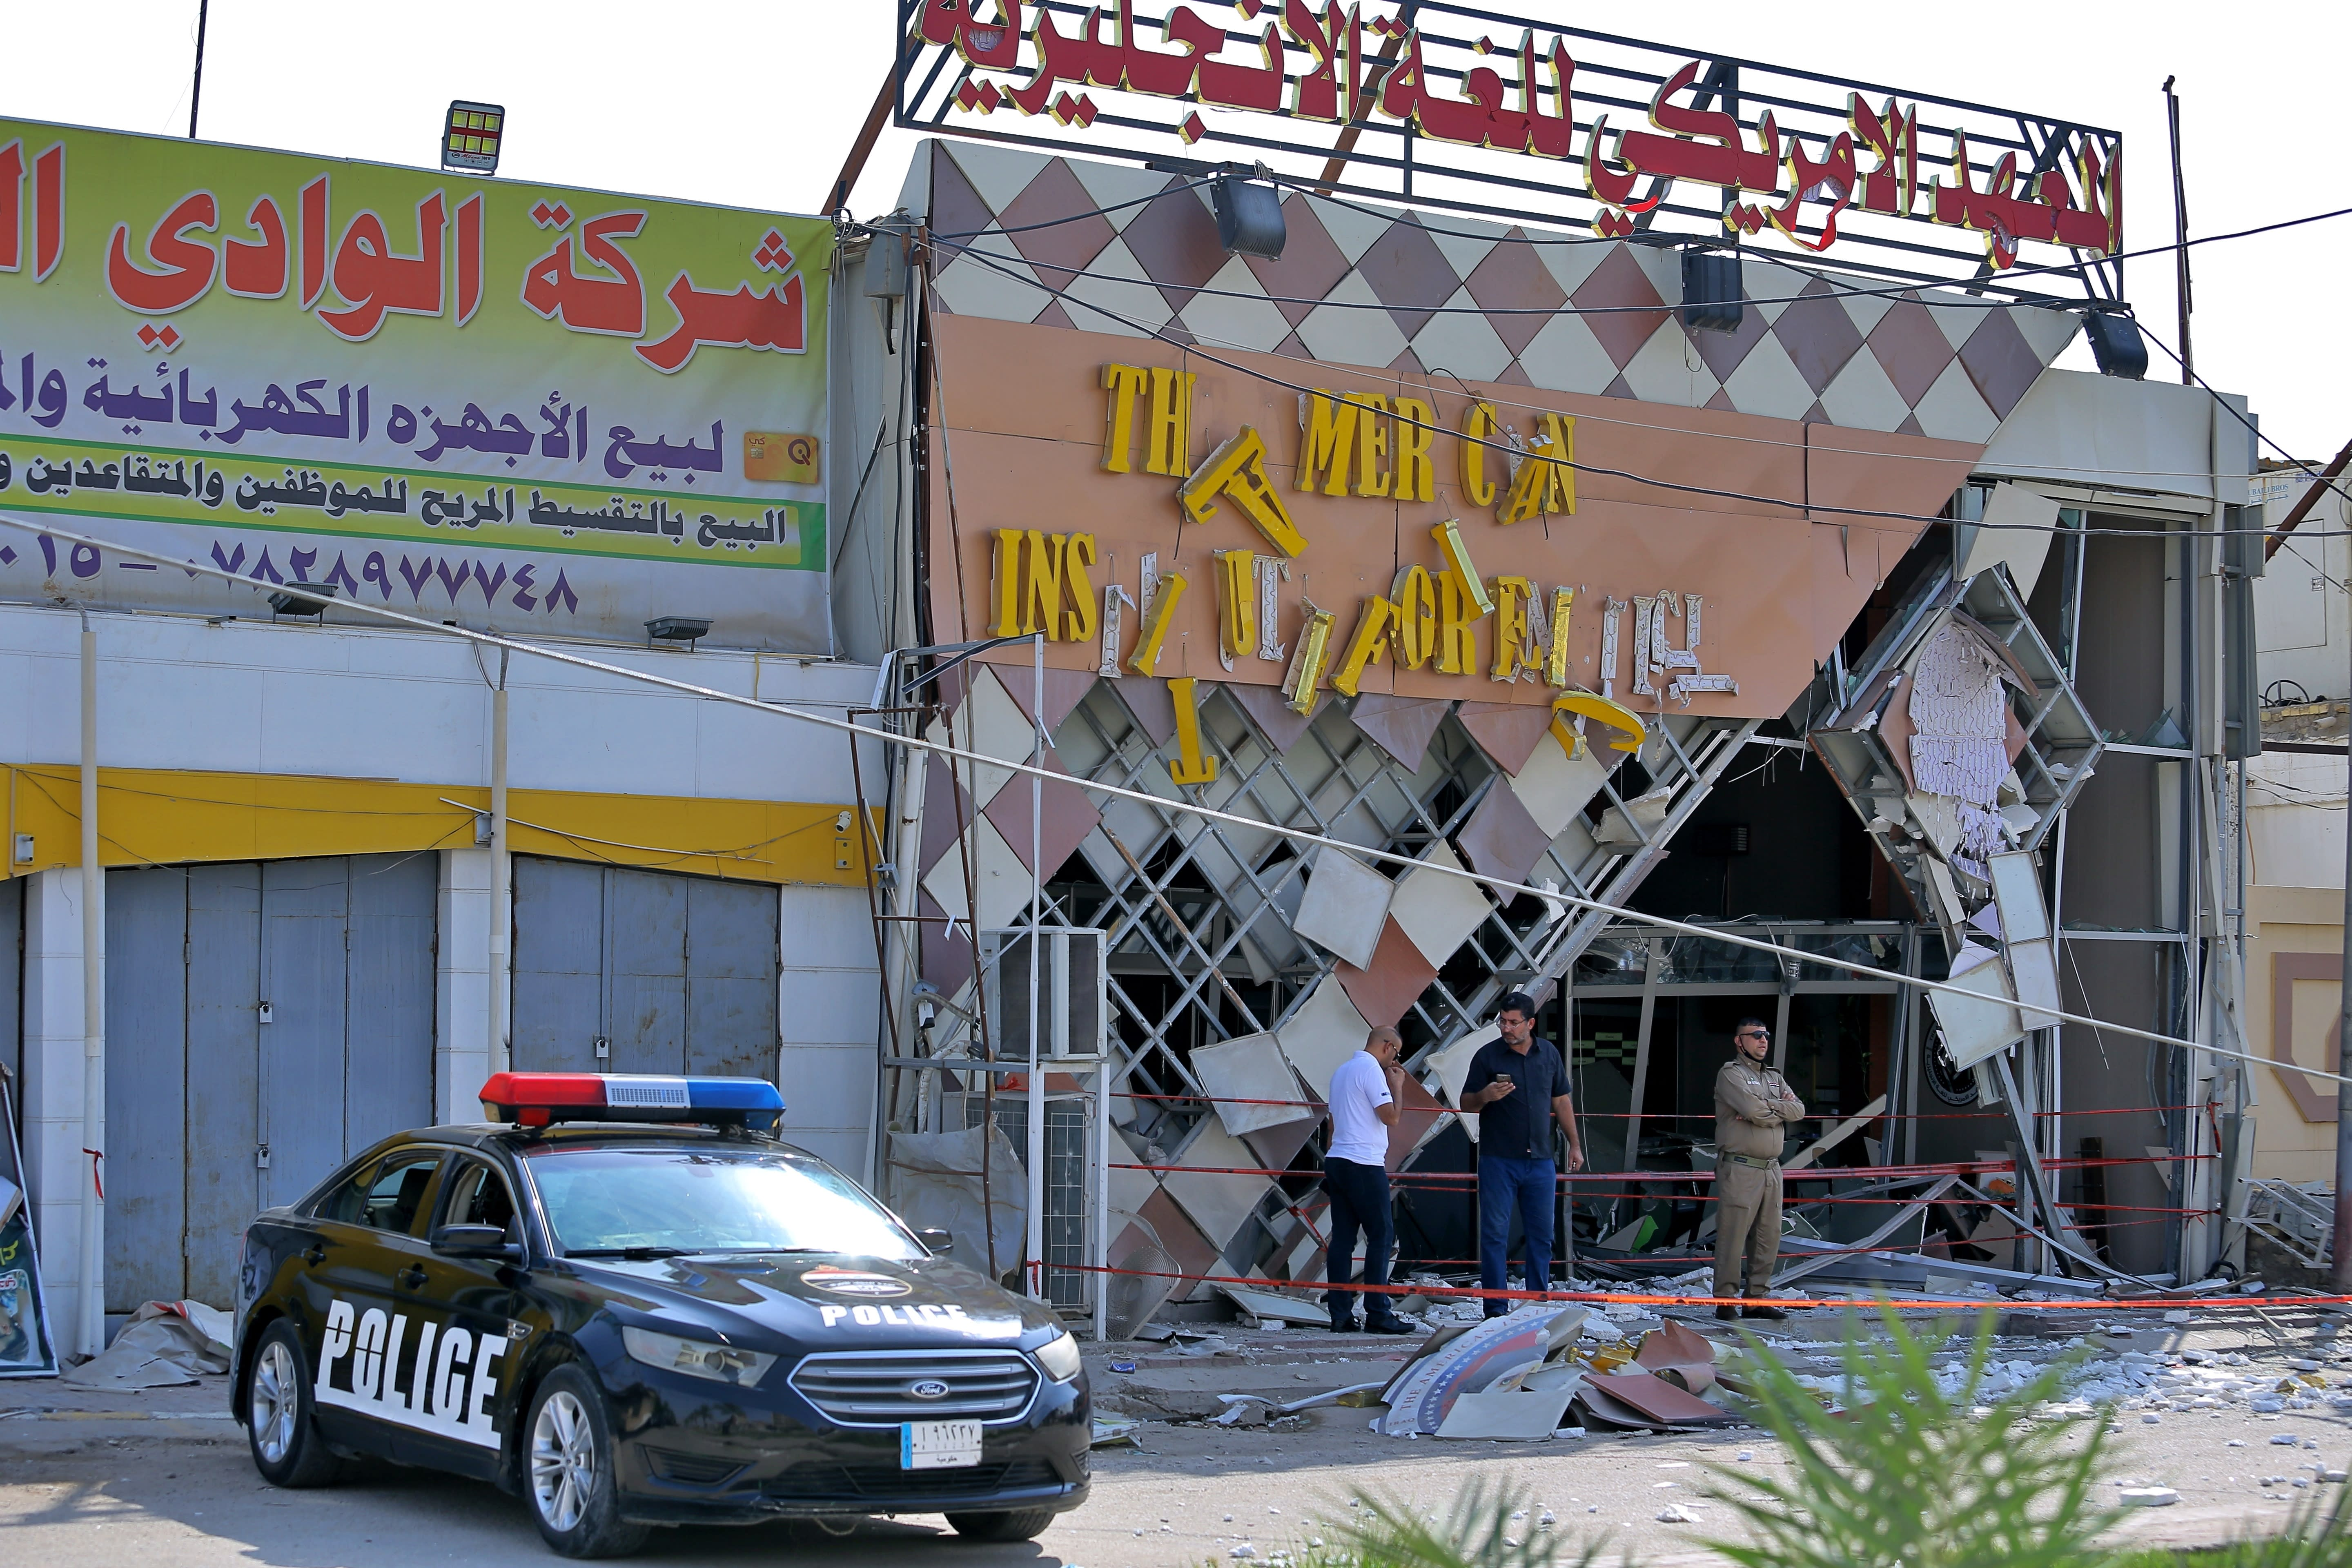 Security forces stand guard near the site of an attack on the American Institute for English Learning in Najaf, Iraq, Friday, Sept. 18, 2020. An IED attack on the American Institute for English Learning in southern Iraq caused major damage without casualties in the early hours on Friday. according to Iraq security officials. (AP Photo/Anmar Khalil)